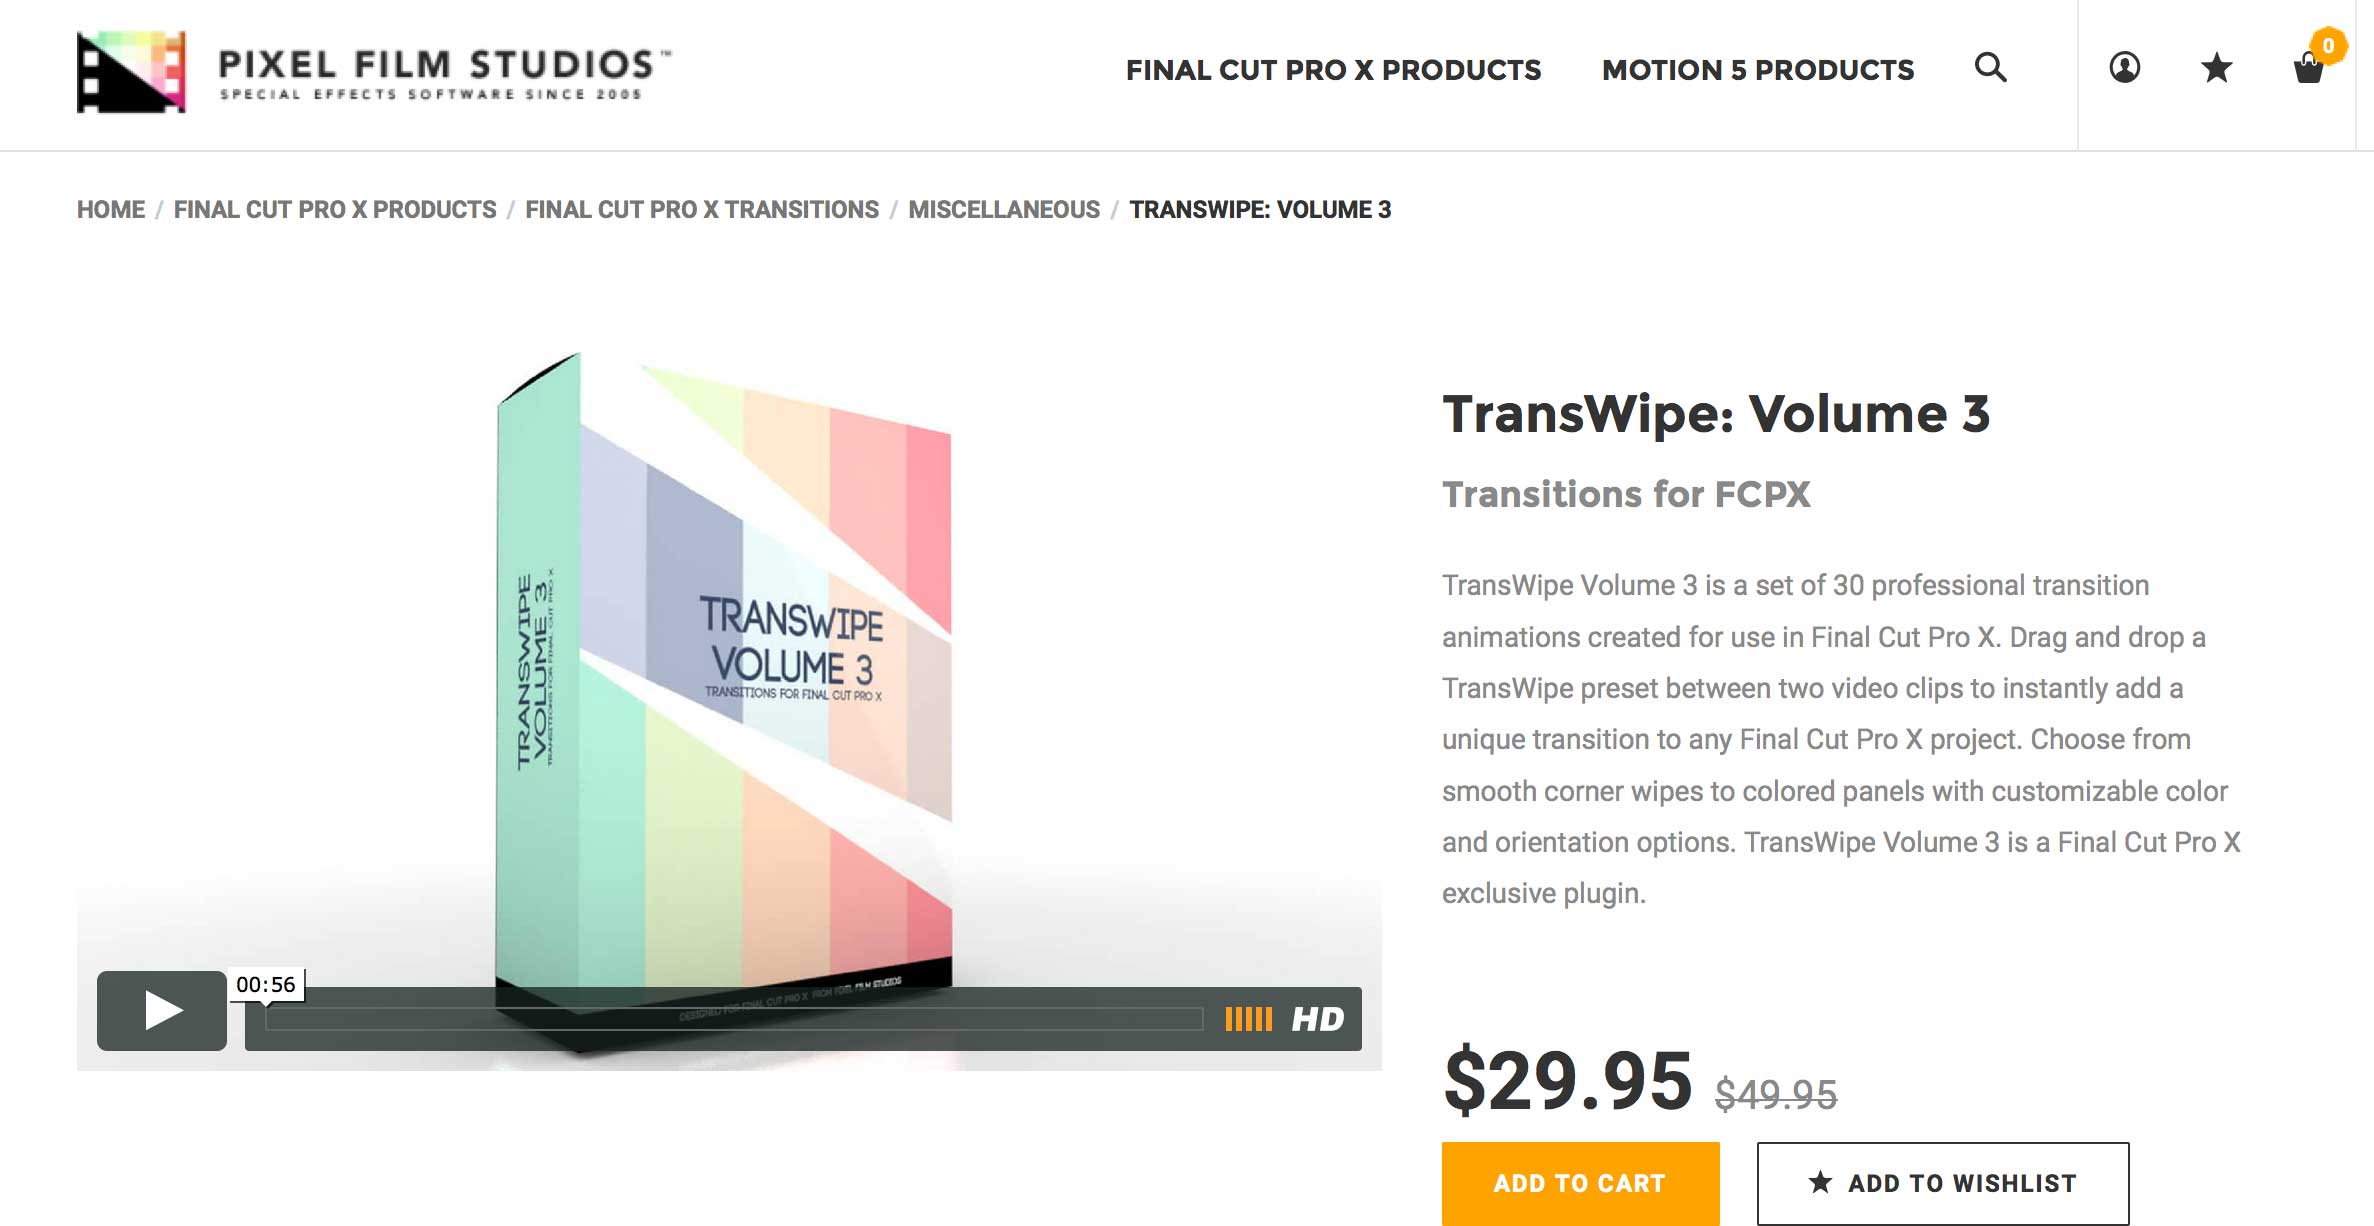 TransWipe Volume 3 Was Released By Pixel Film Studios for FCPX